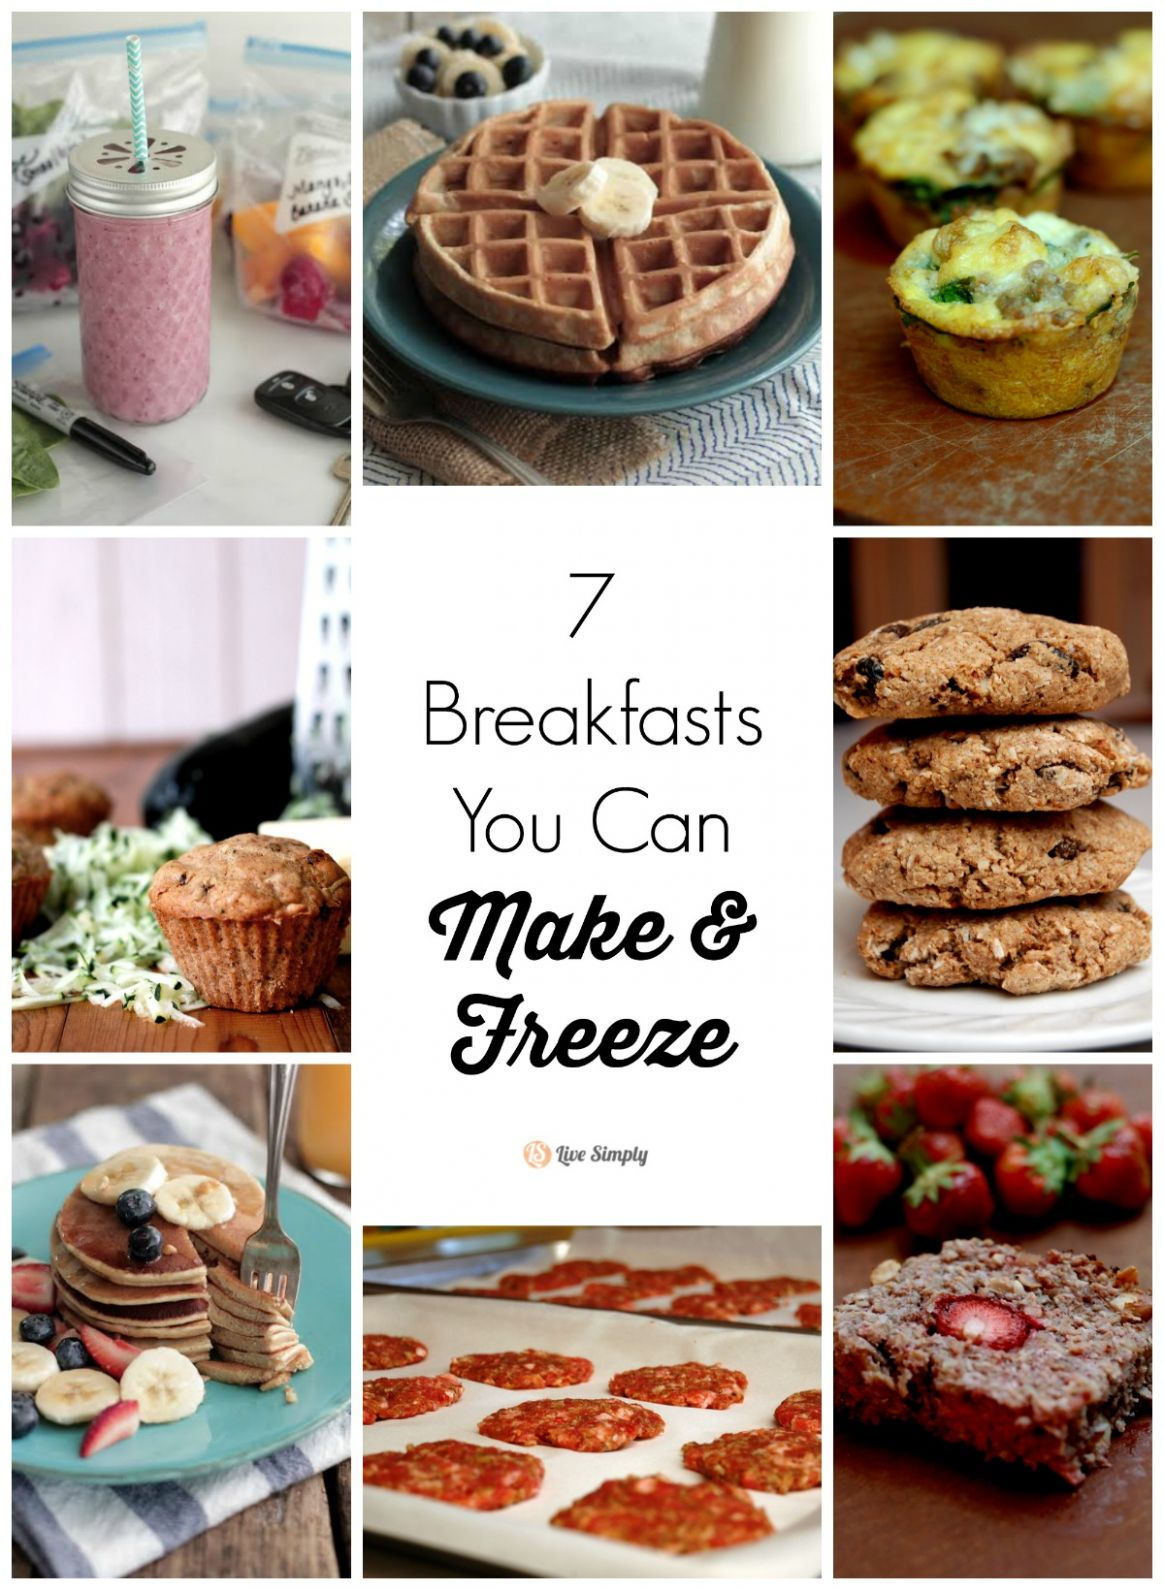 8 Breakfasts You Can Make and Freeze - Live Simply - Breakfast Recipes You Can Freeze